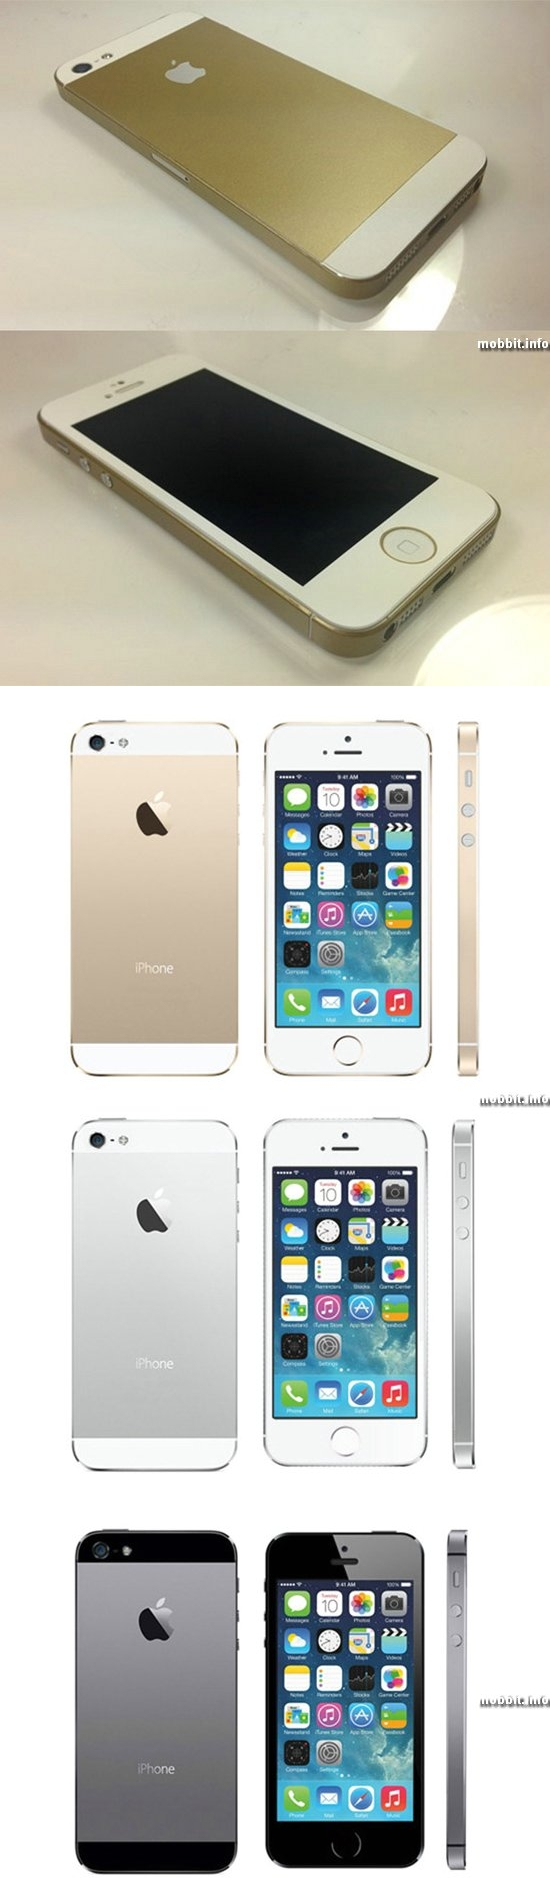 iPhone 5S Upgrade Kit for iPhone 5